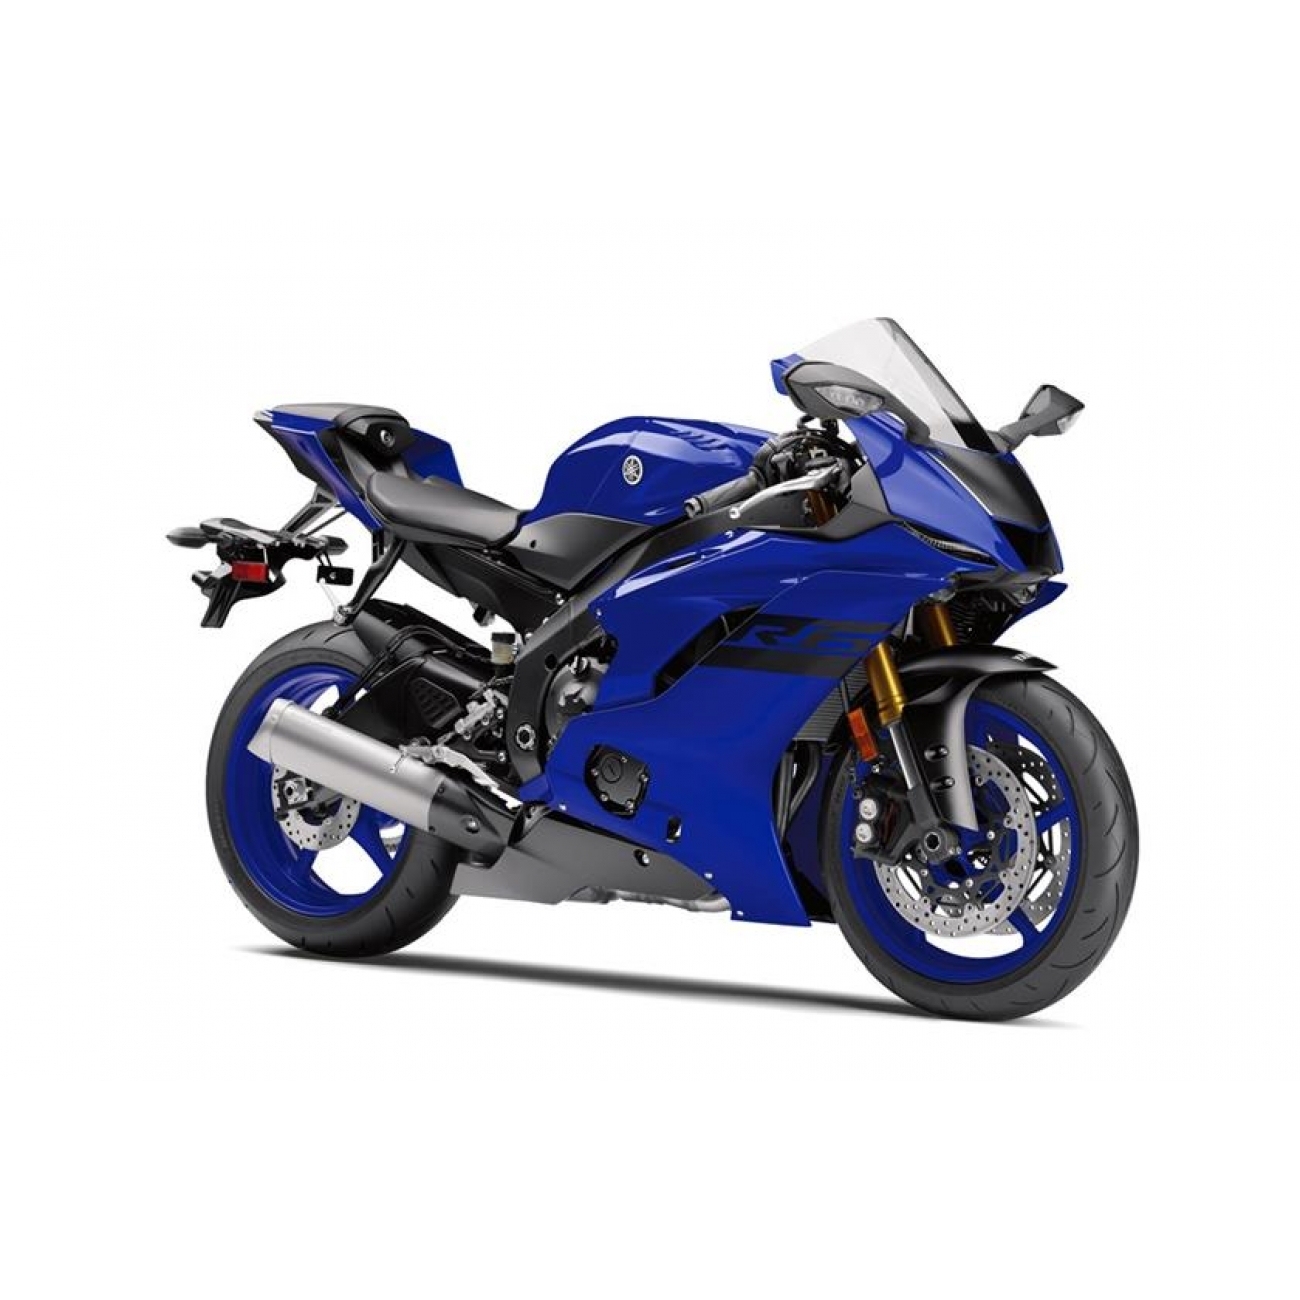 motorcycle yamaha yzf r6. Black Bedroom Furniture Sets. Home Design Ideas